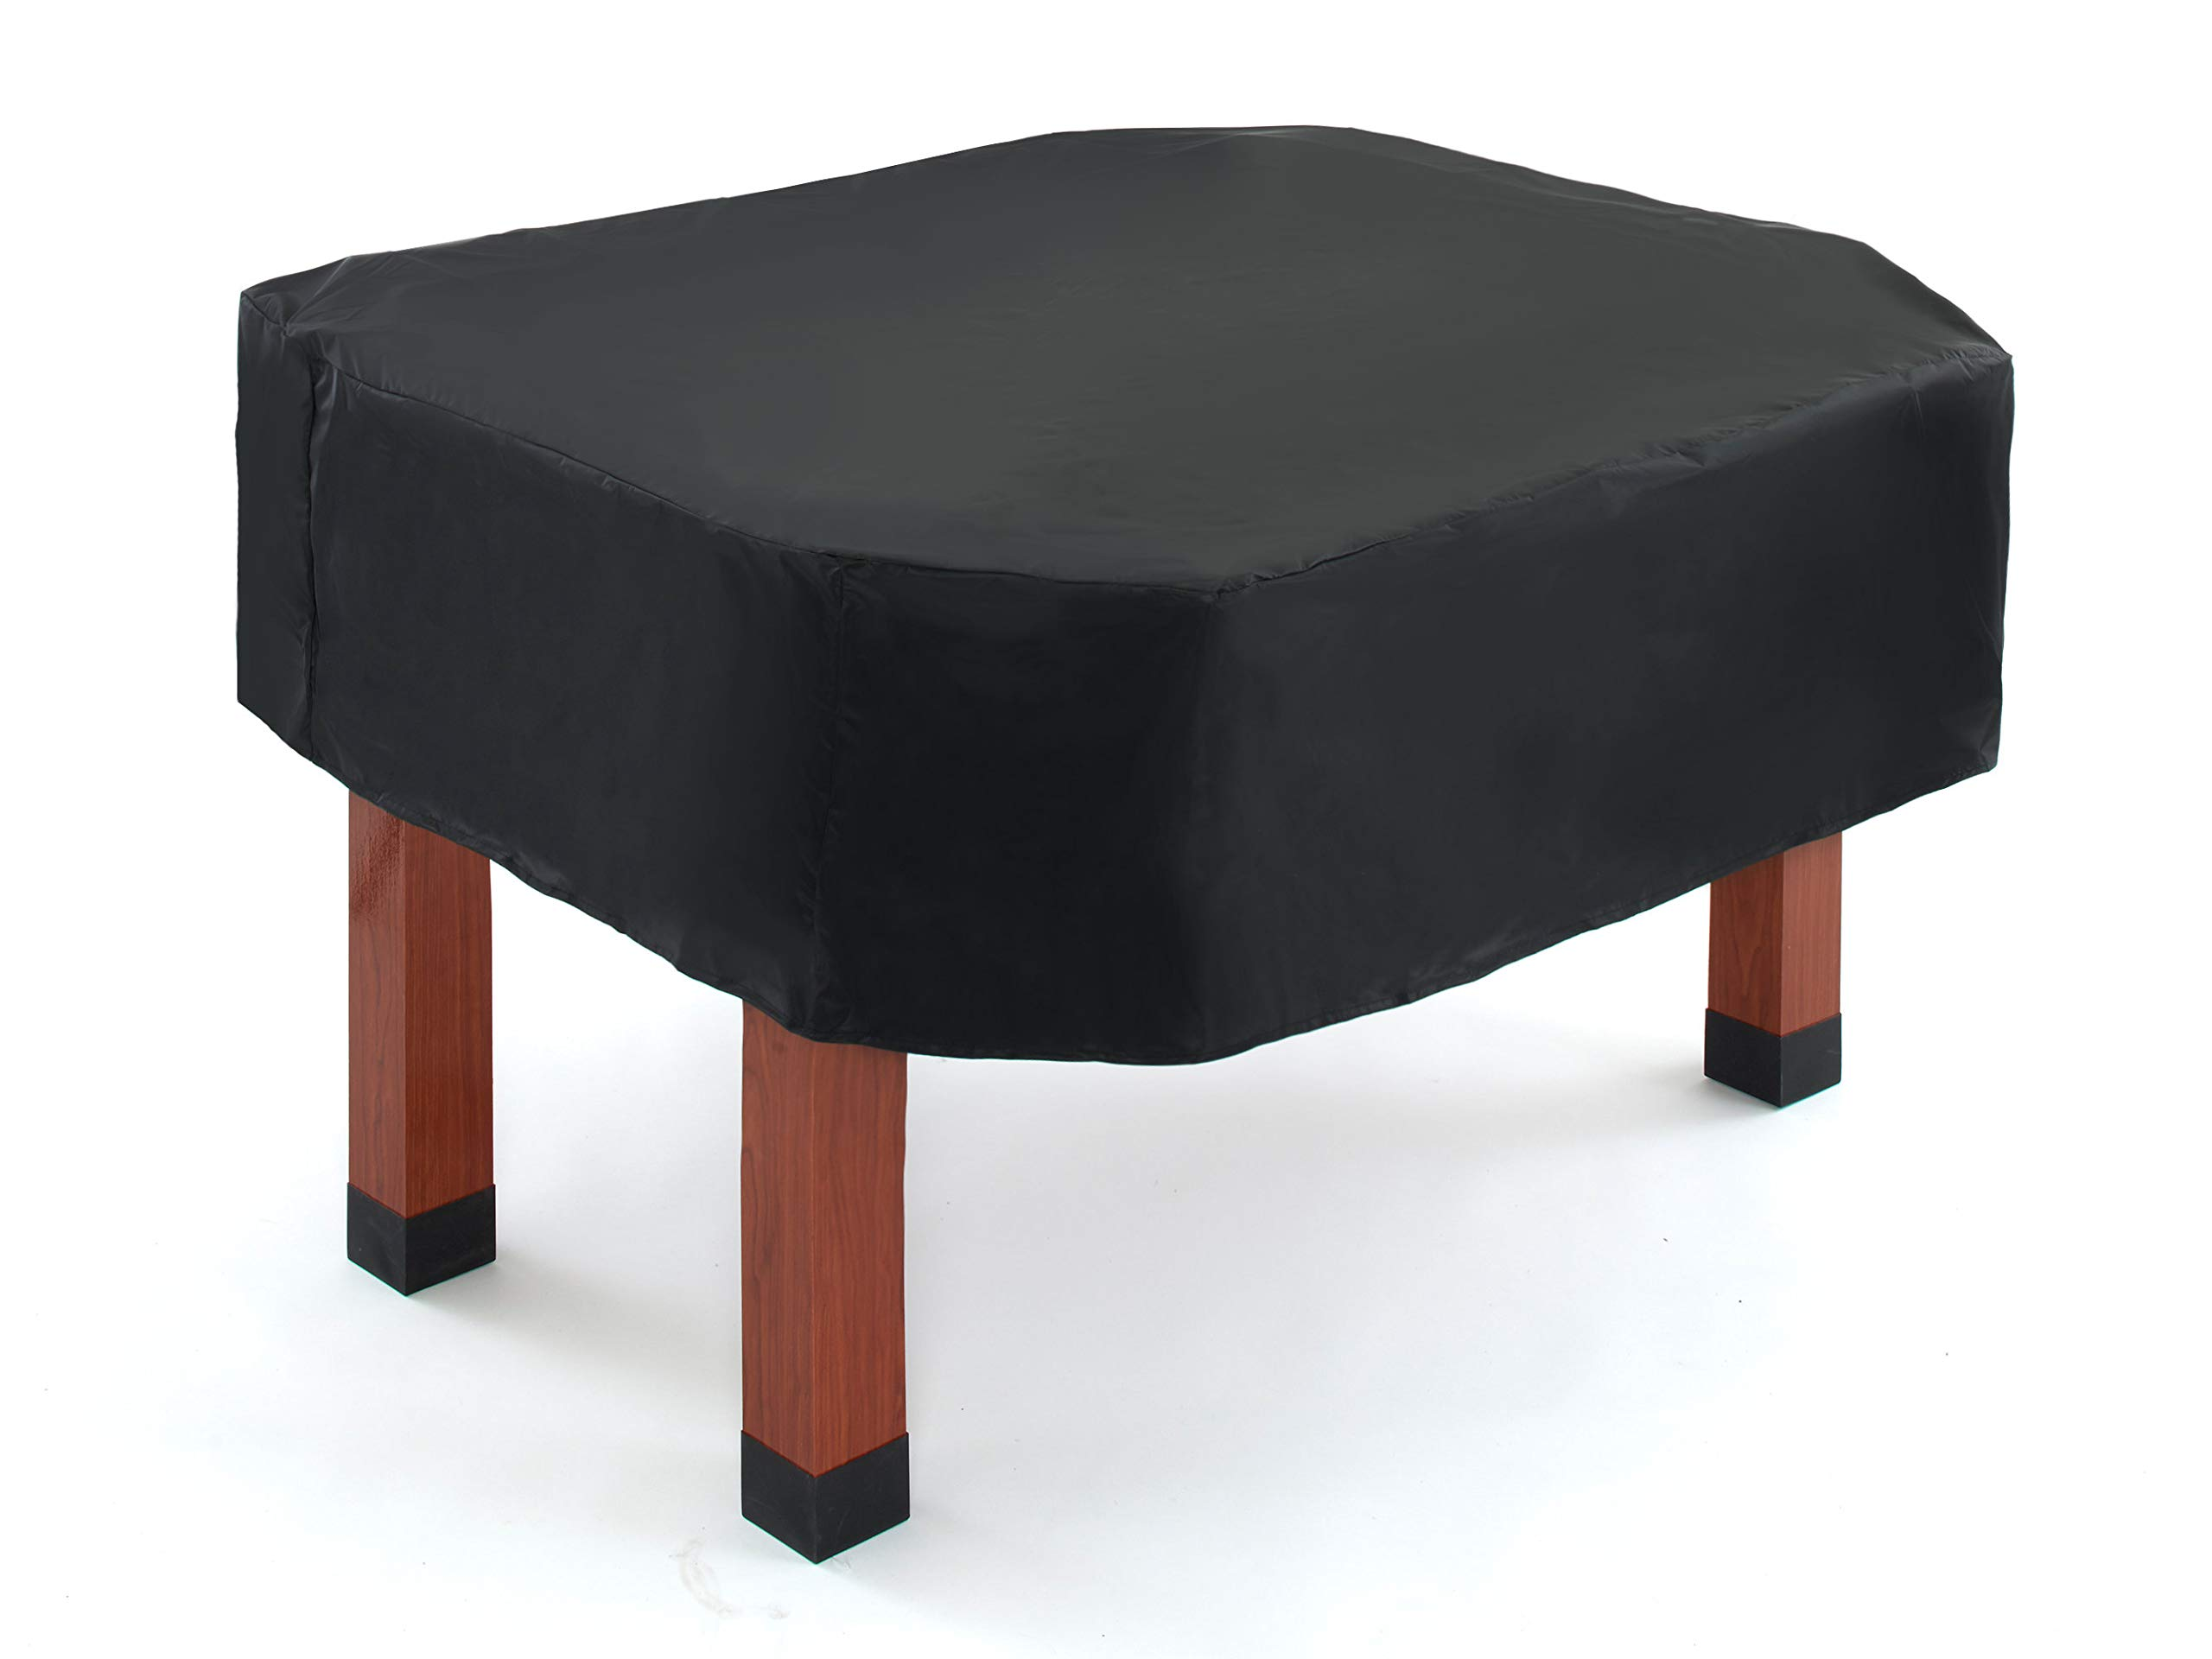 Covermates - Foosball Table Cover - 56W x 52D x 15H - Classic Collection - 2 YR Warranty - Year Around Protection - Black by Covermates